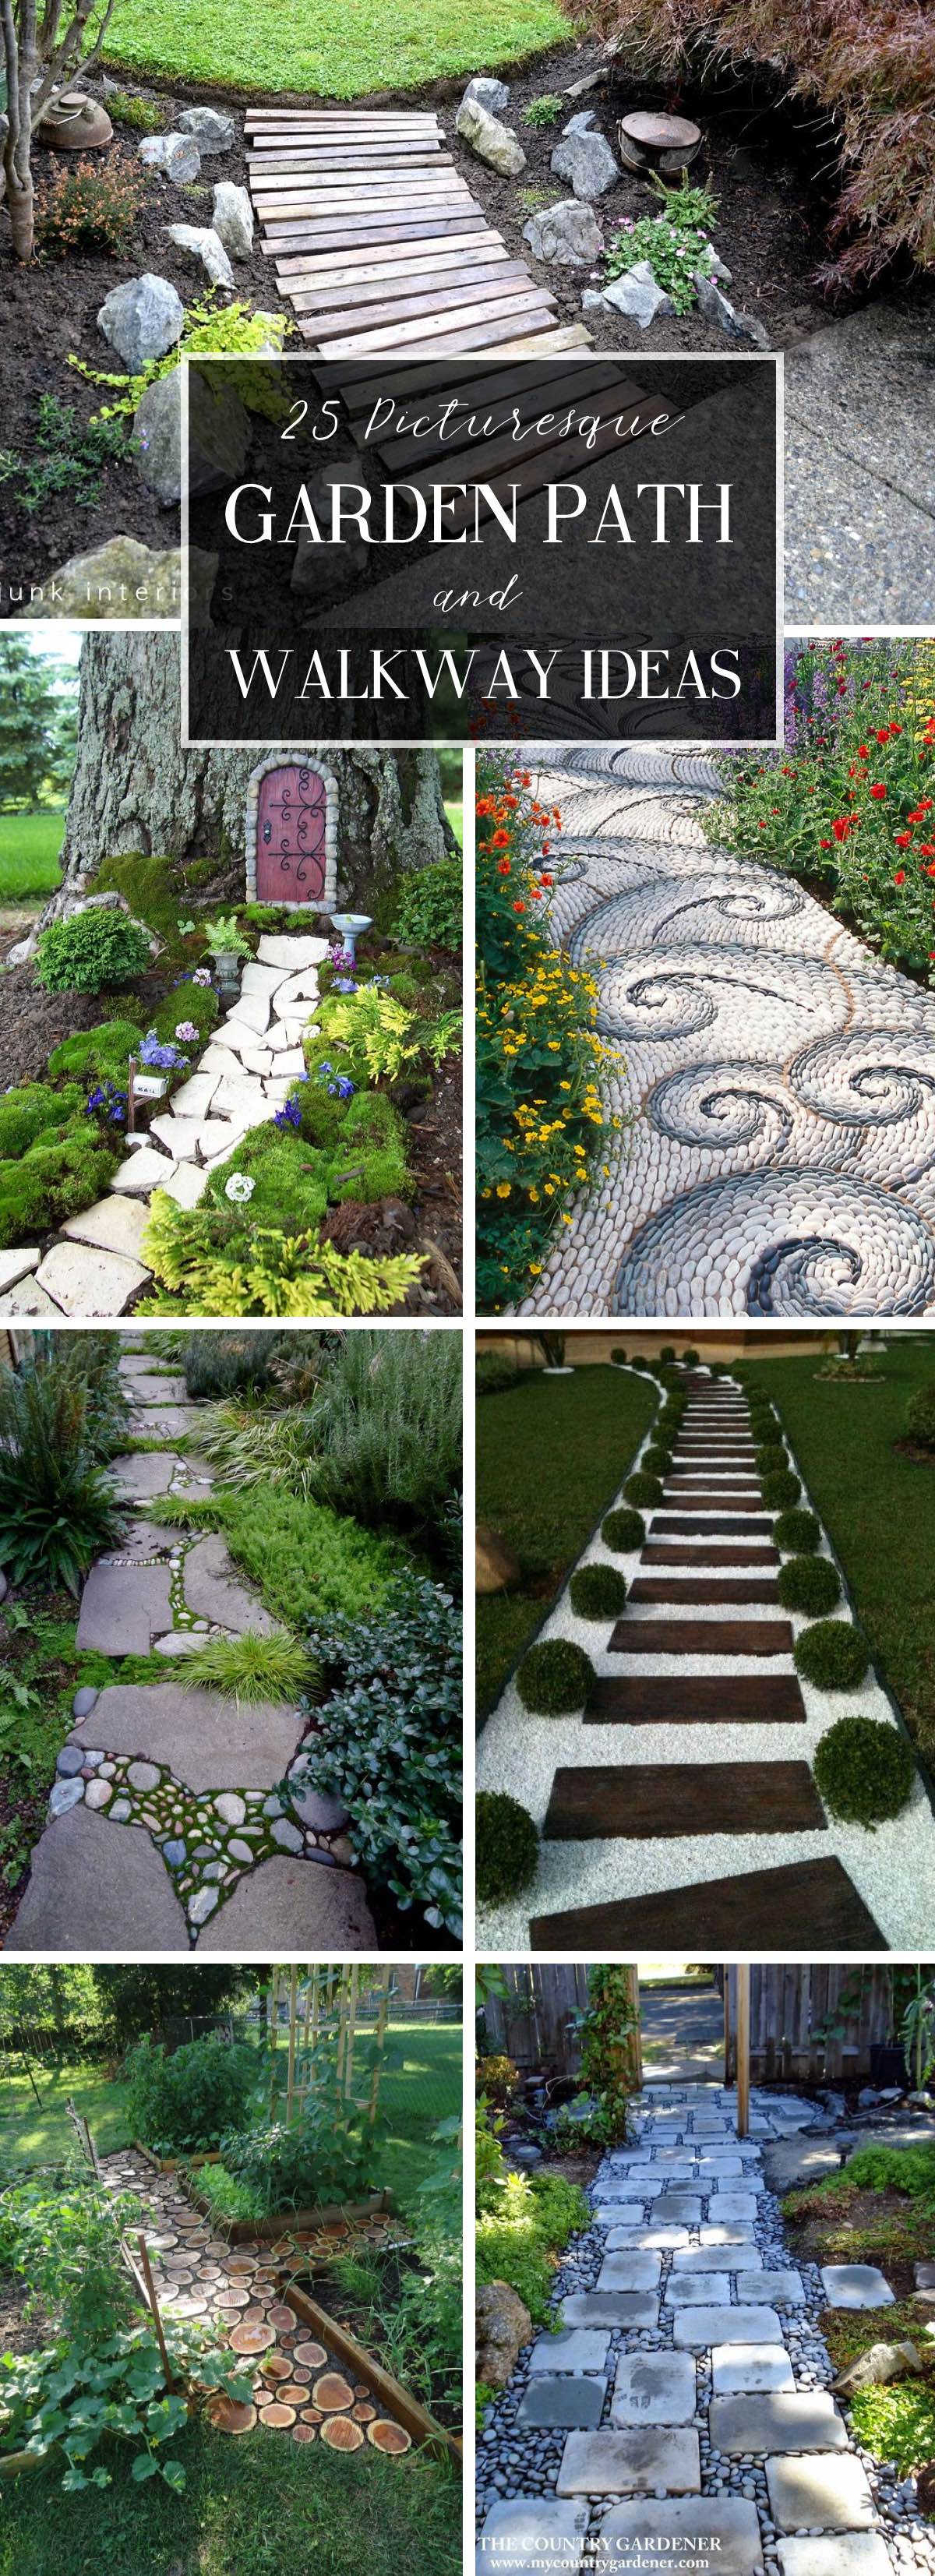 25 Picturesque Garden Path and Walkway Ideas